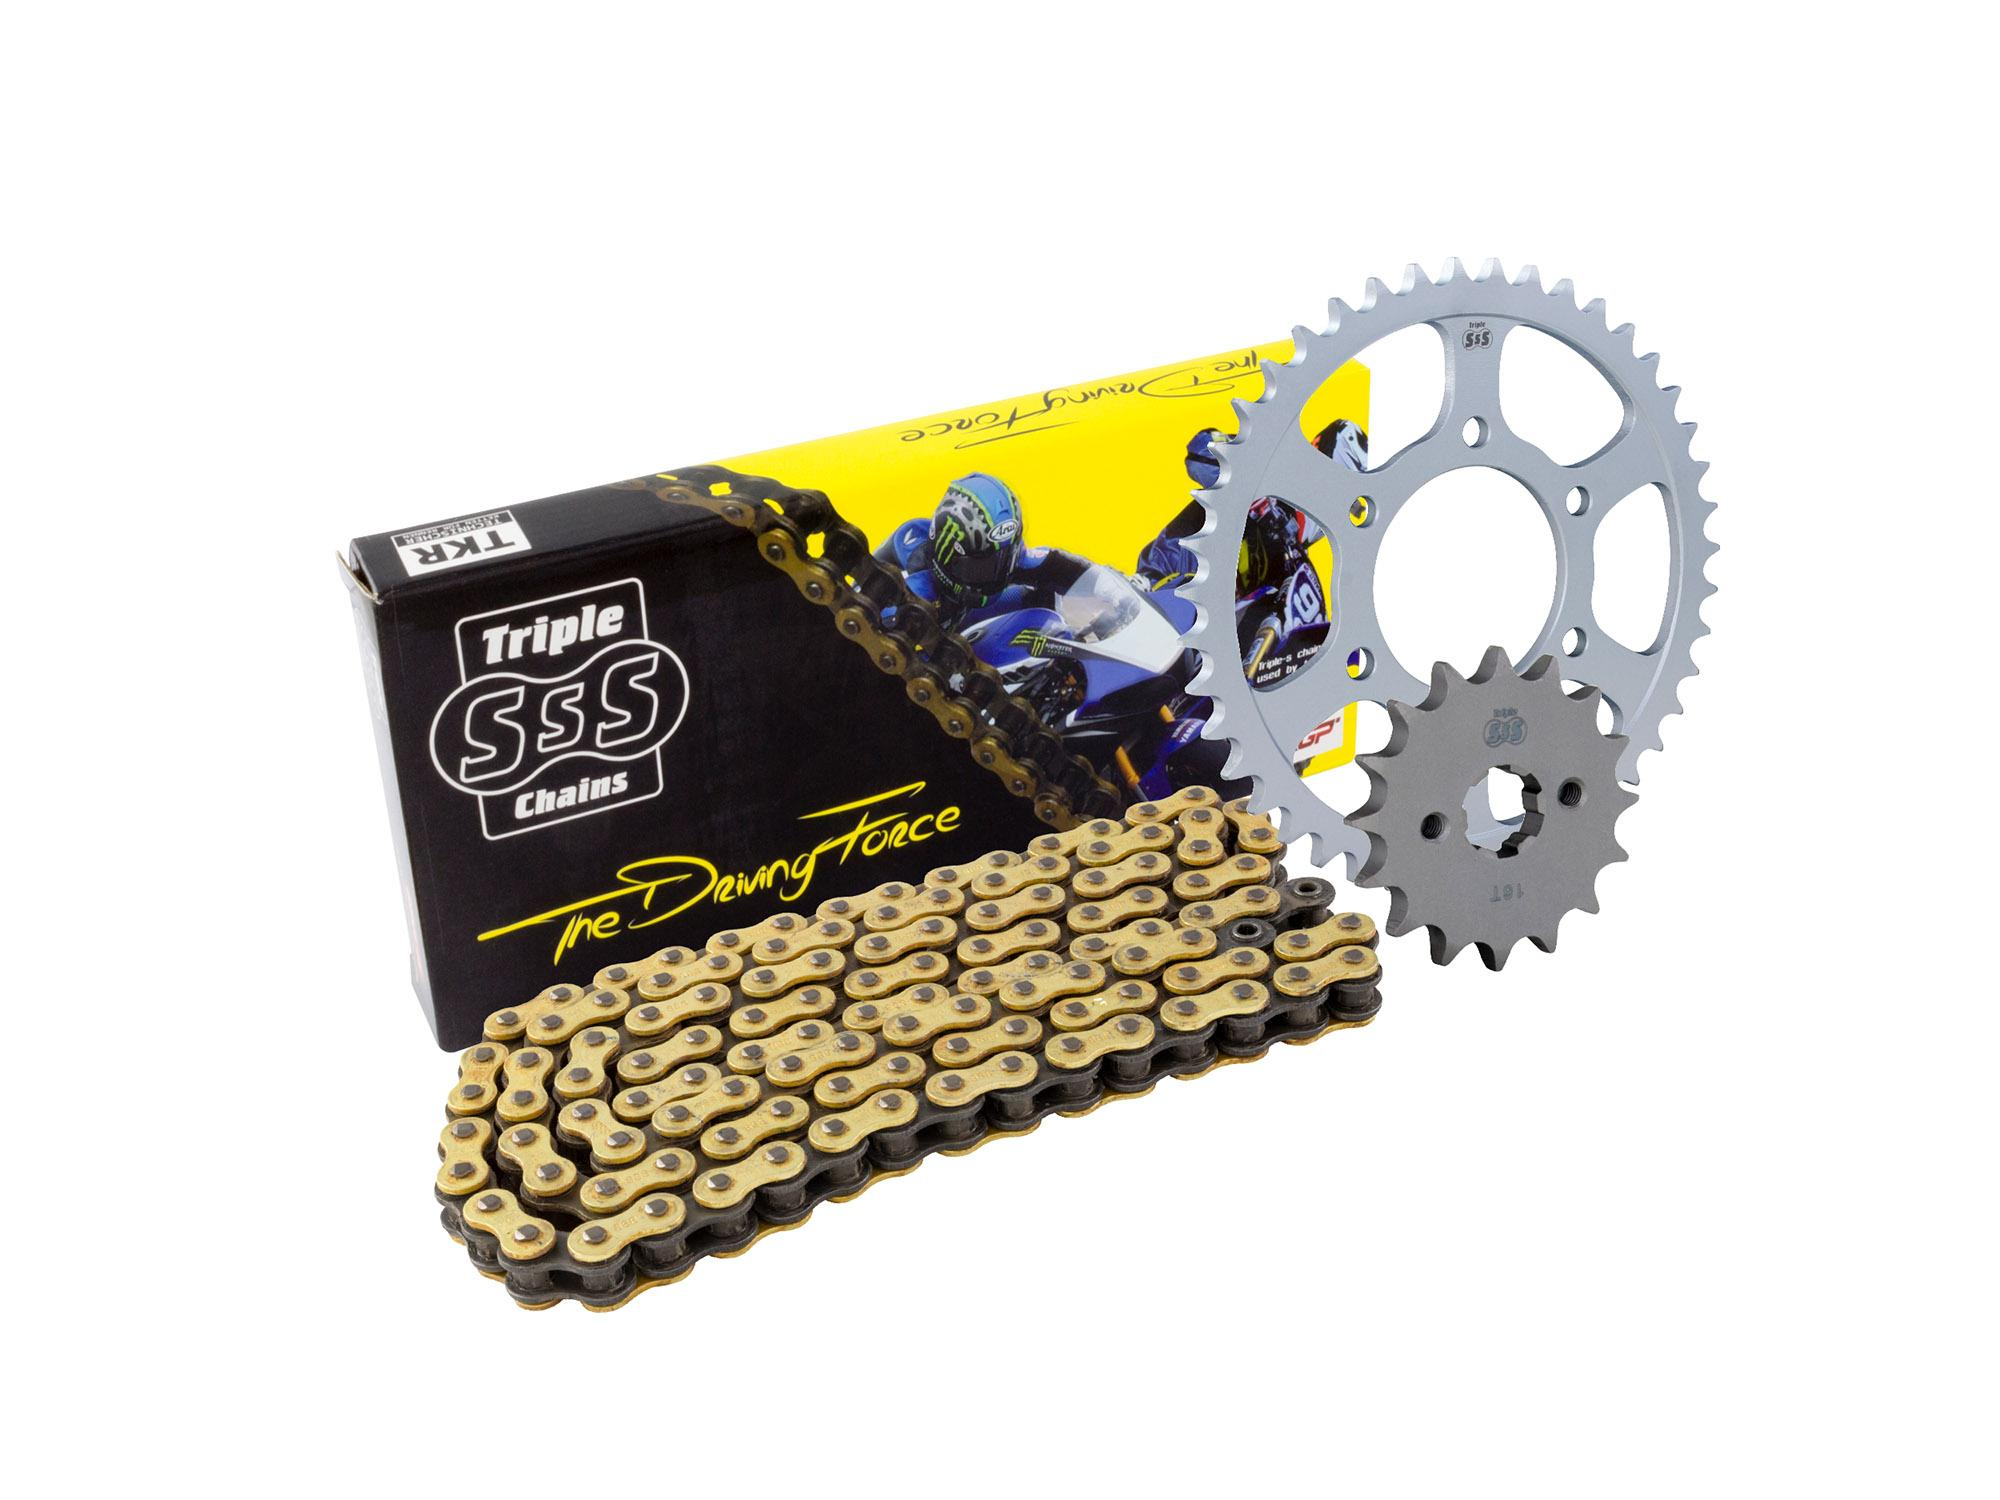 Honda XL600 Transalp 91-00 Chain & Sprocket Kit: 15T Front, 47T Rear, HD O-Ring Gold Chain 525H 120Link